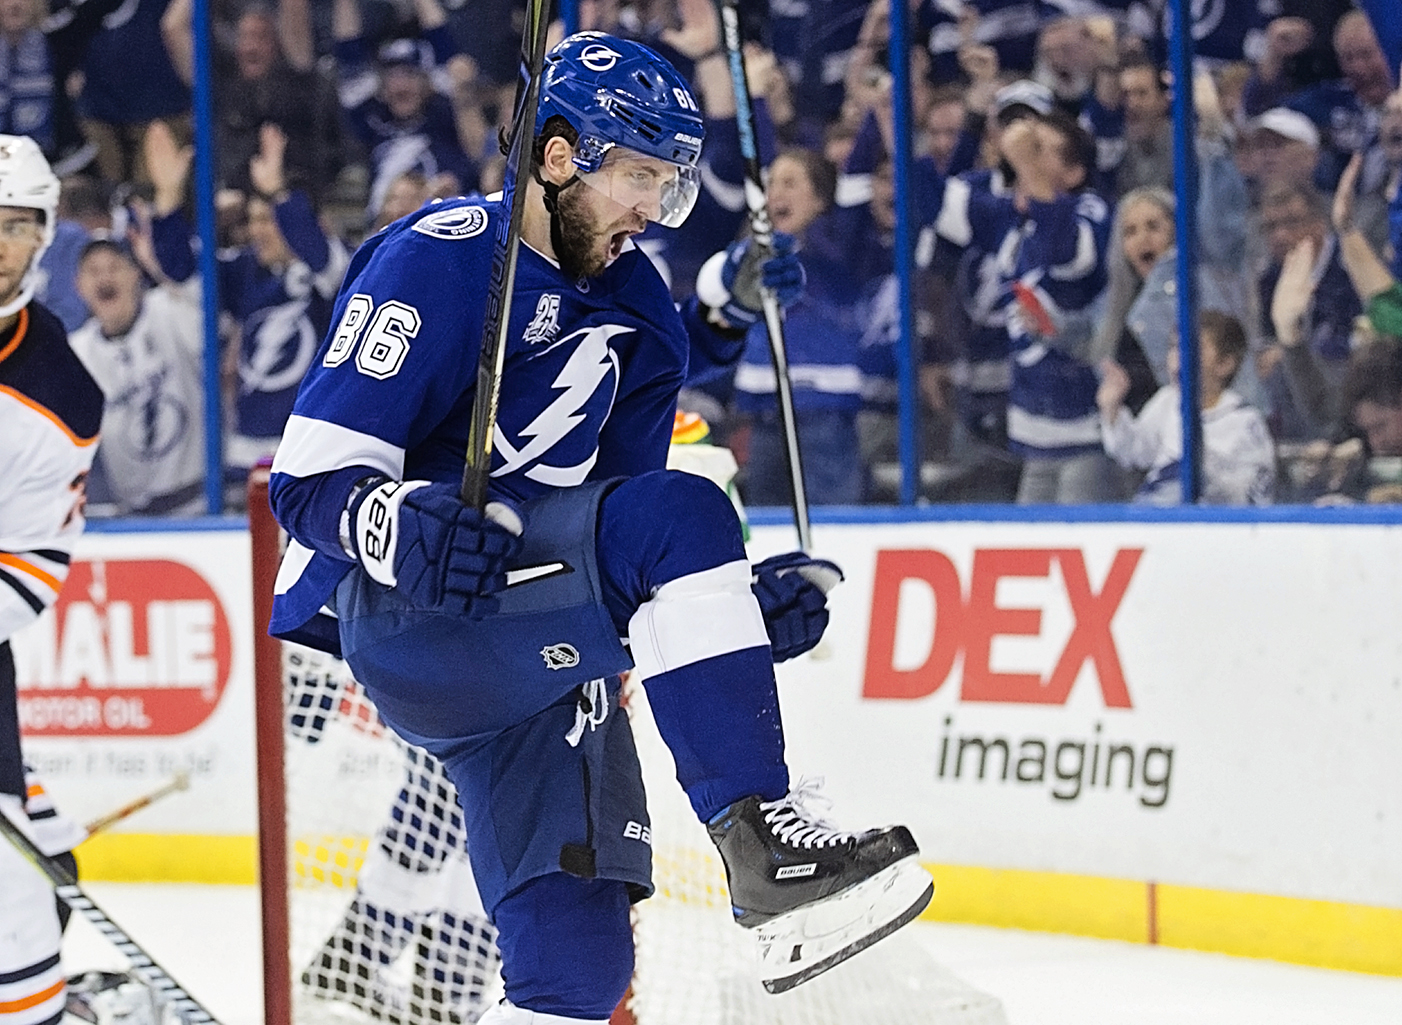 Kucherov scored two goals to lead the Lightning./CARMEN MANDATO